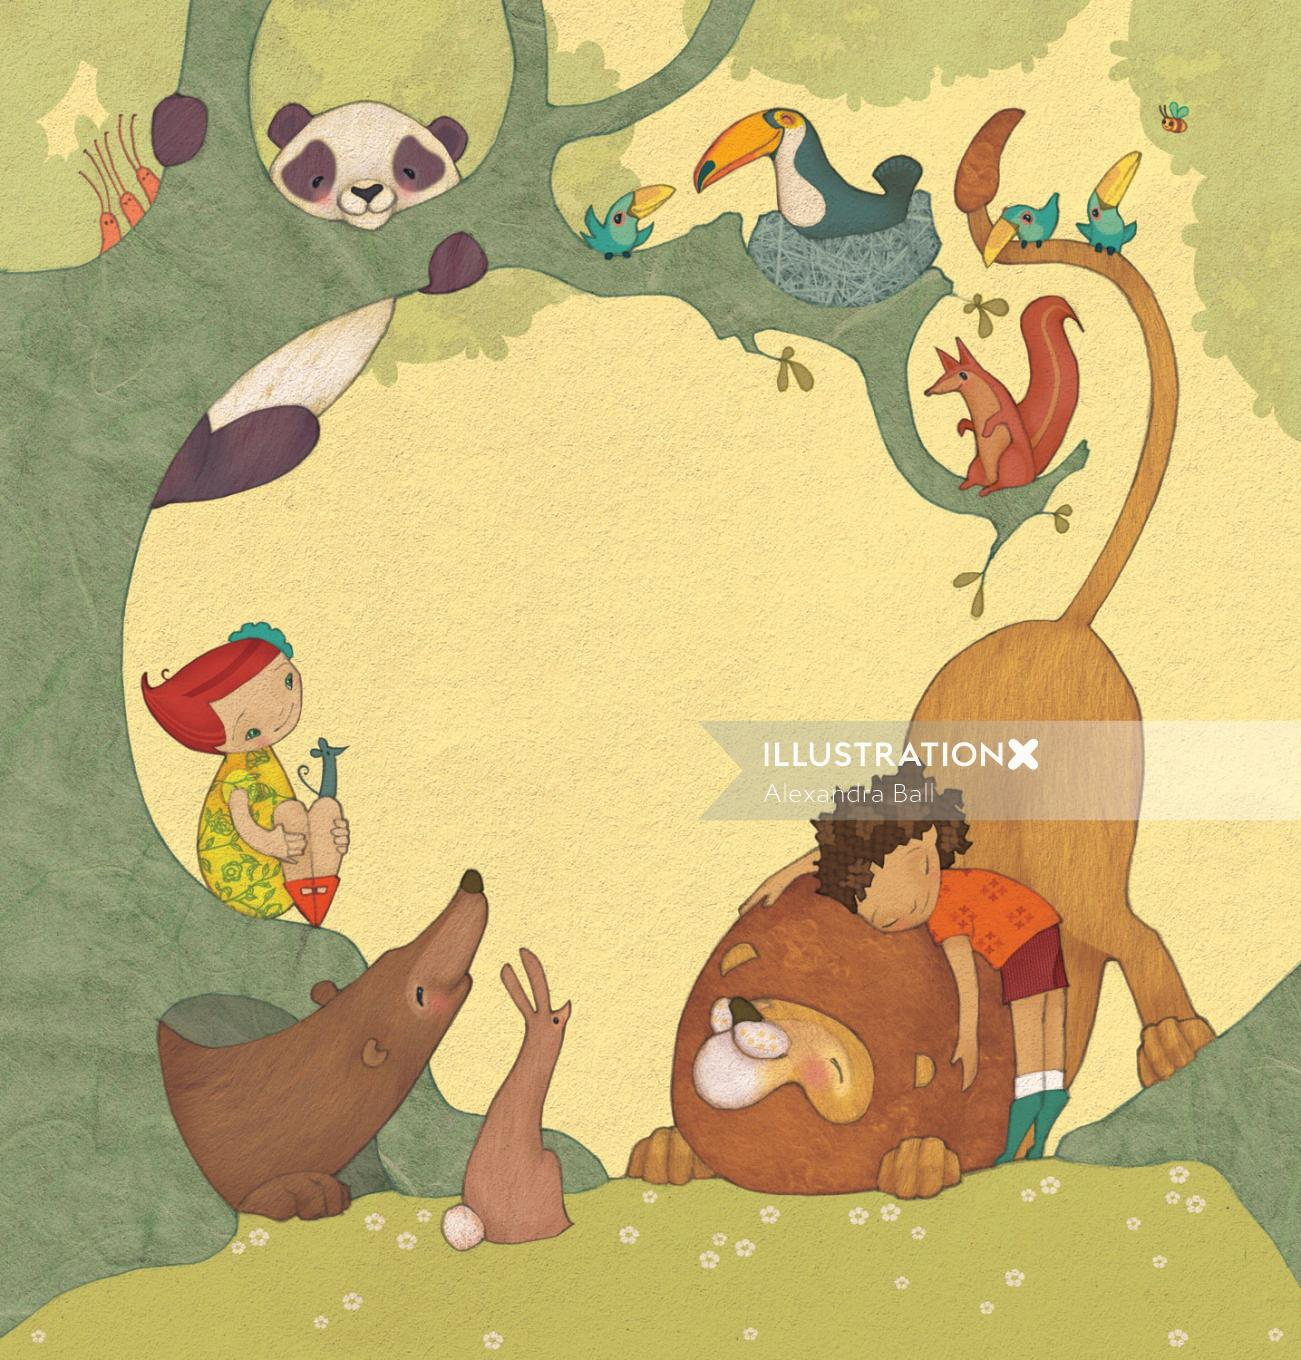 Illustration of a children playing and showing care for animals